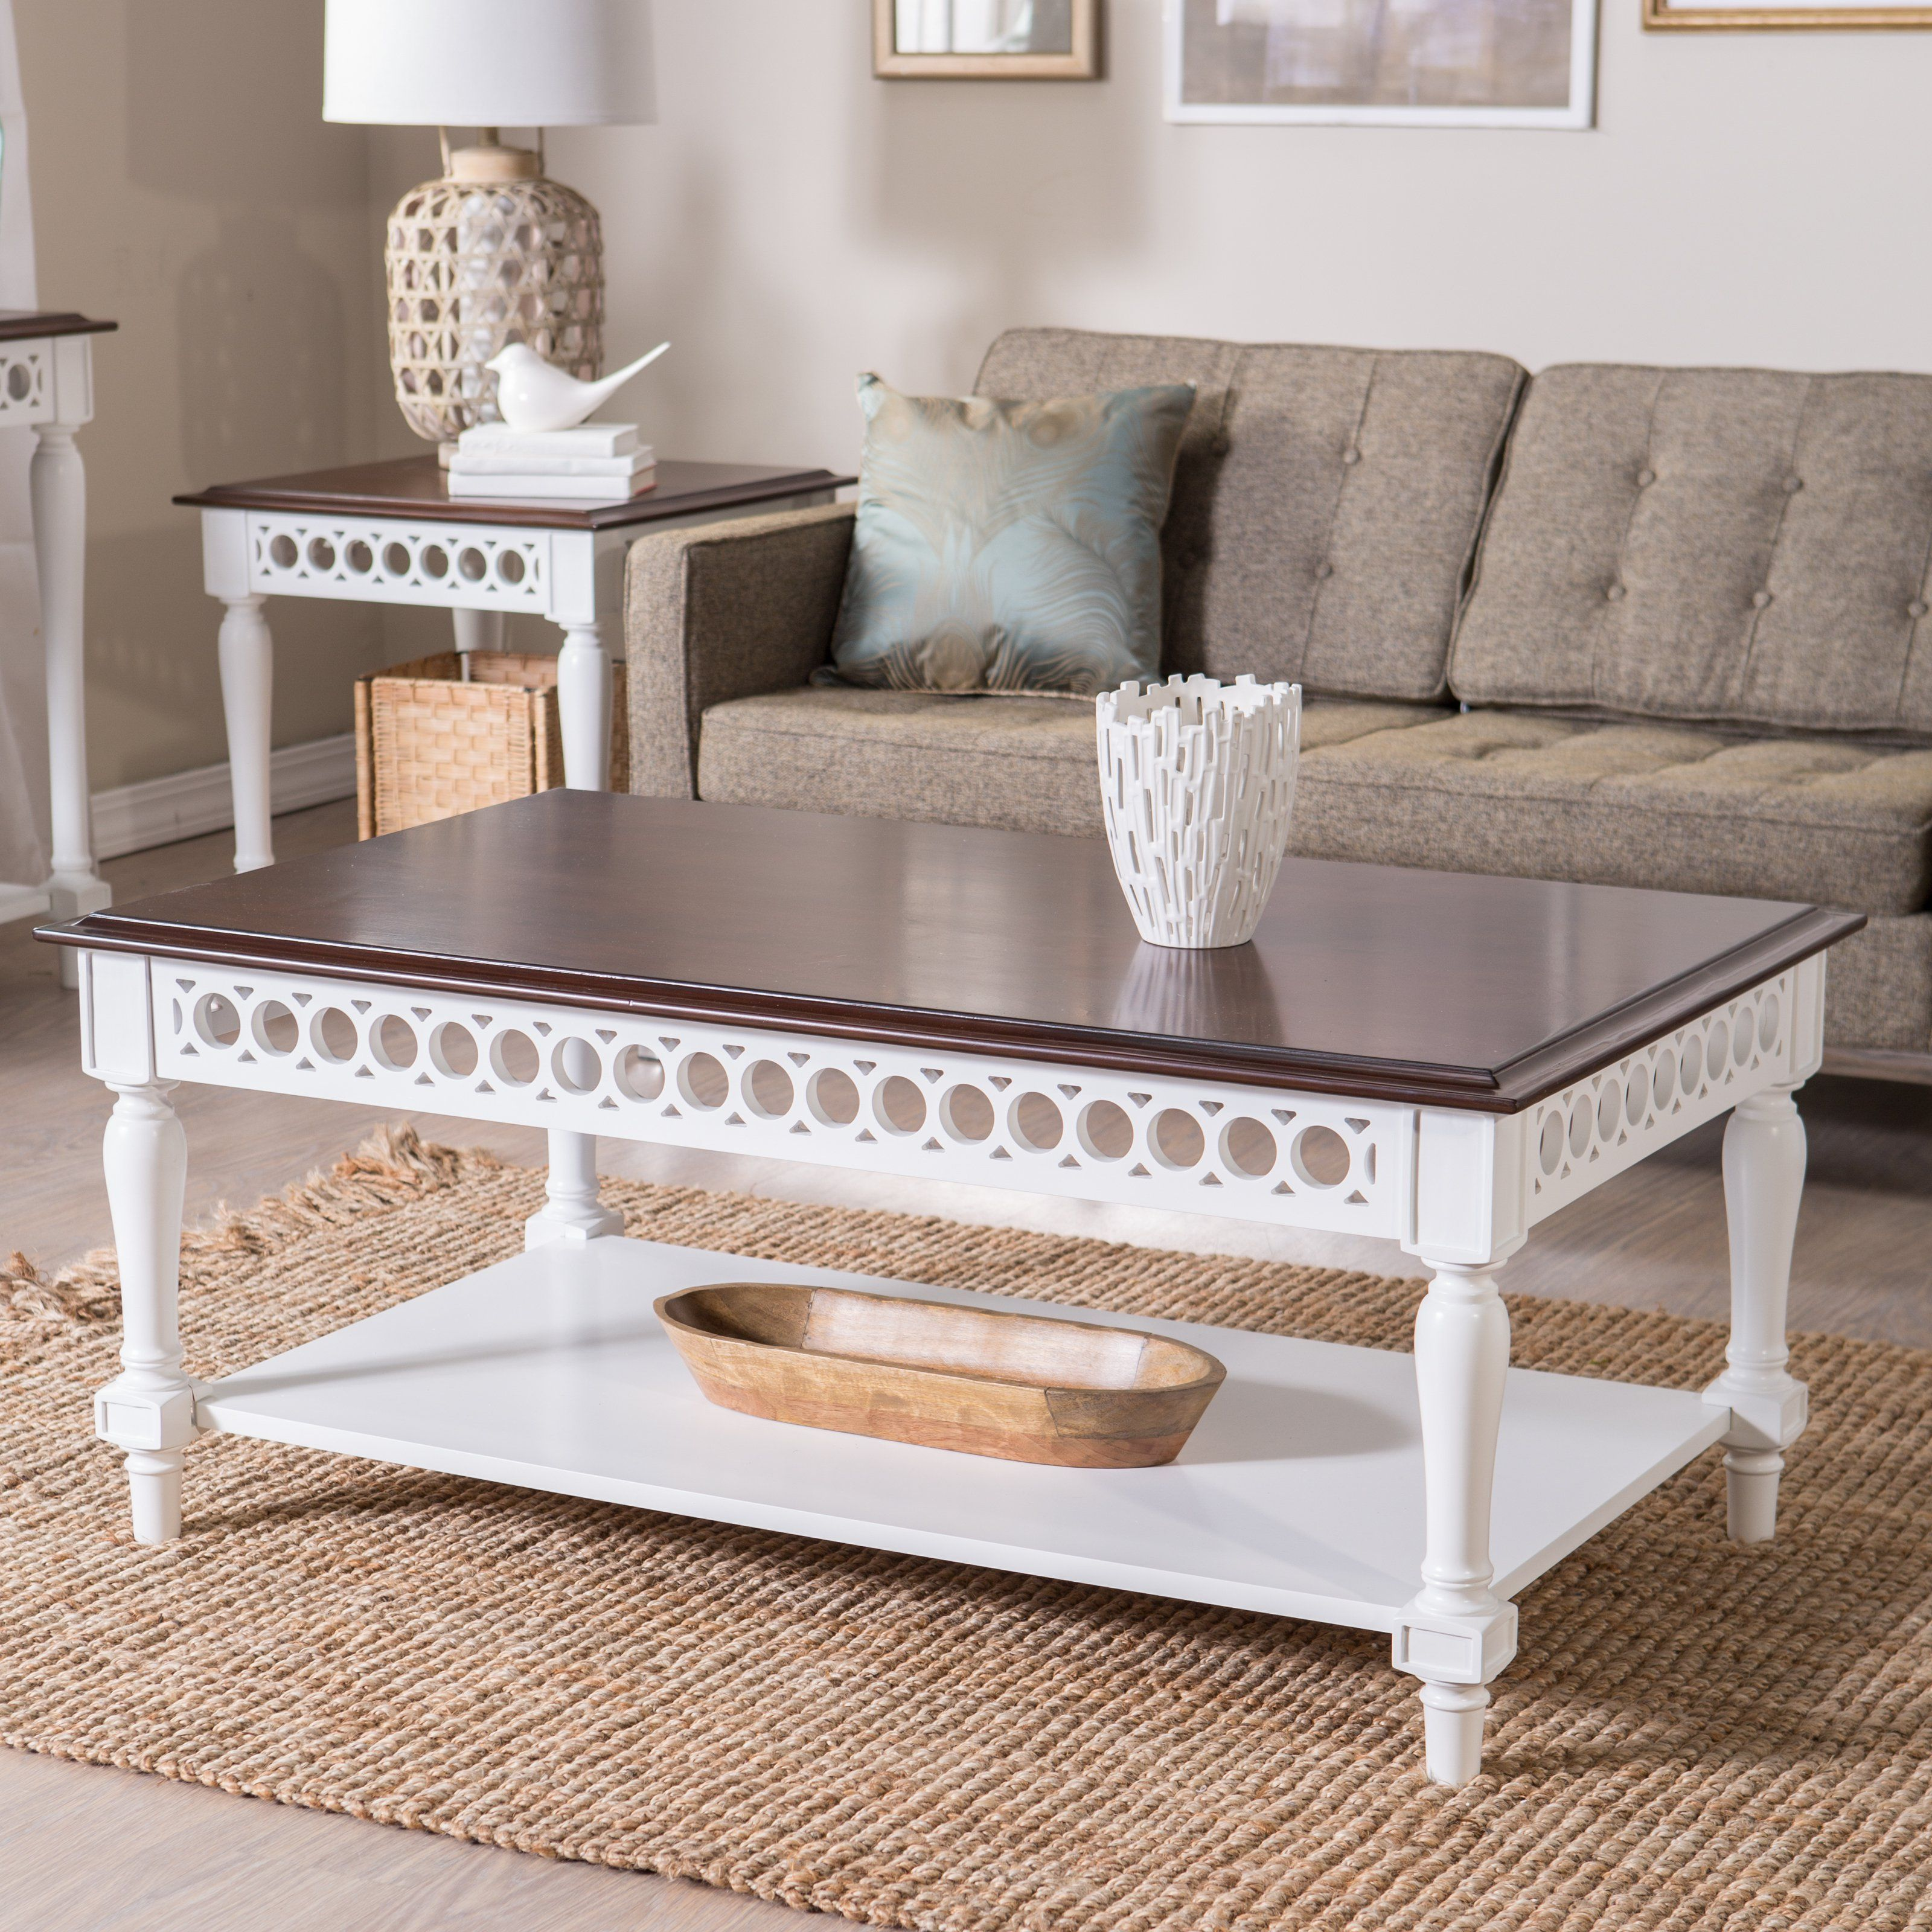 This Antique Style Coffee Table Has 2 Smoothly Running Drawers Which Provide Ample Storage E For Your Personal Belongings And Will Help Keep Room